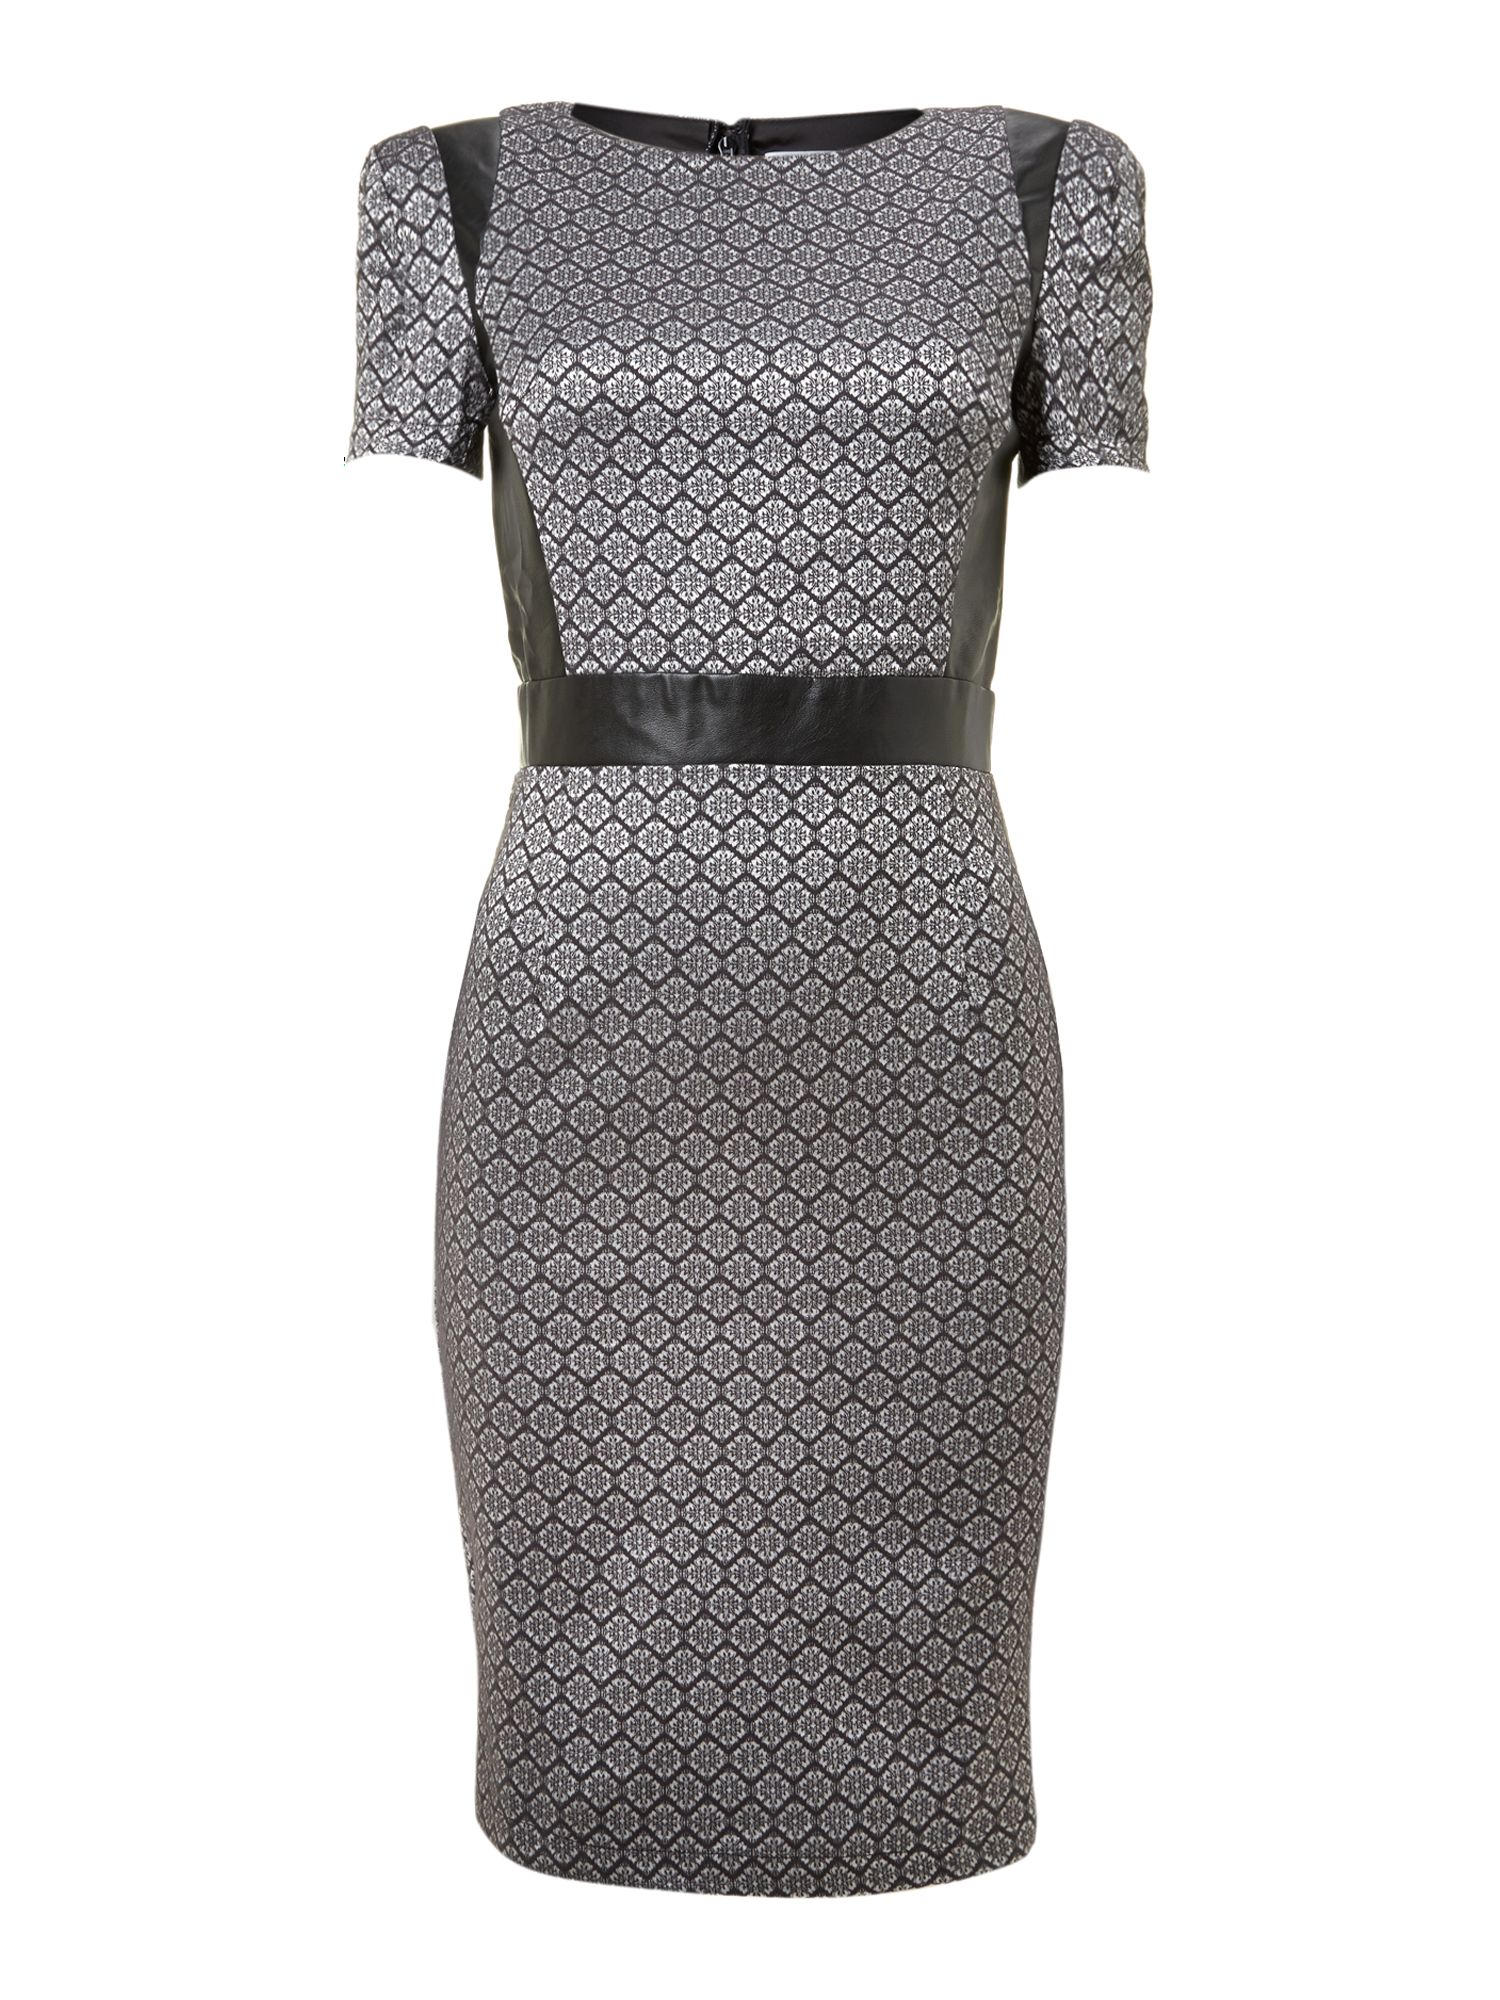 Shift print midi dress